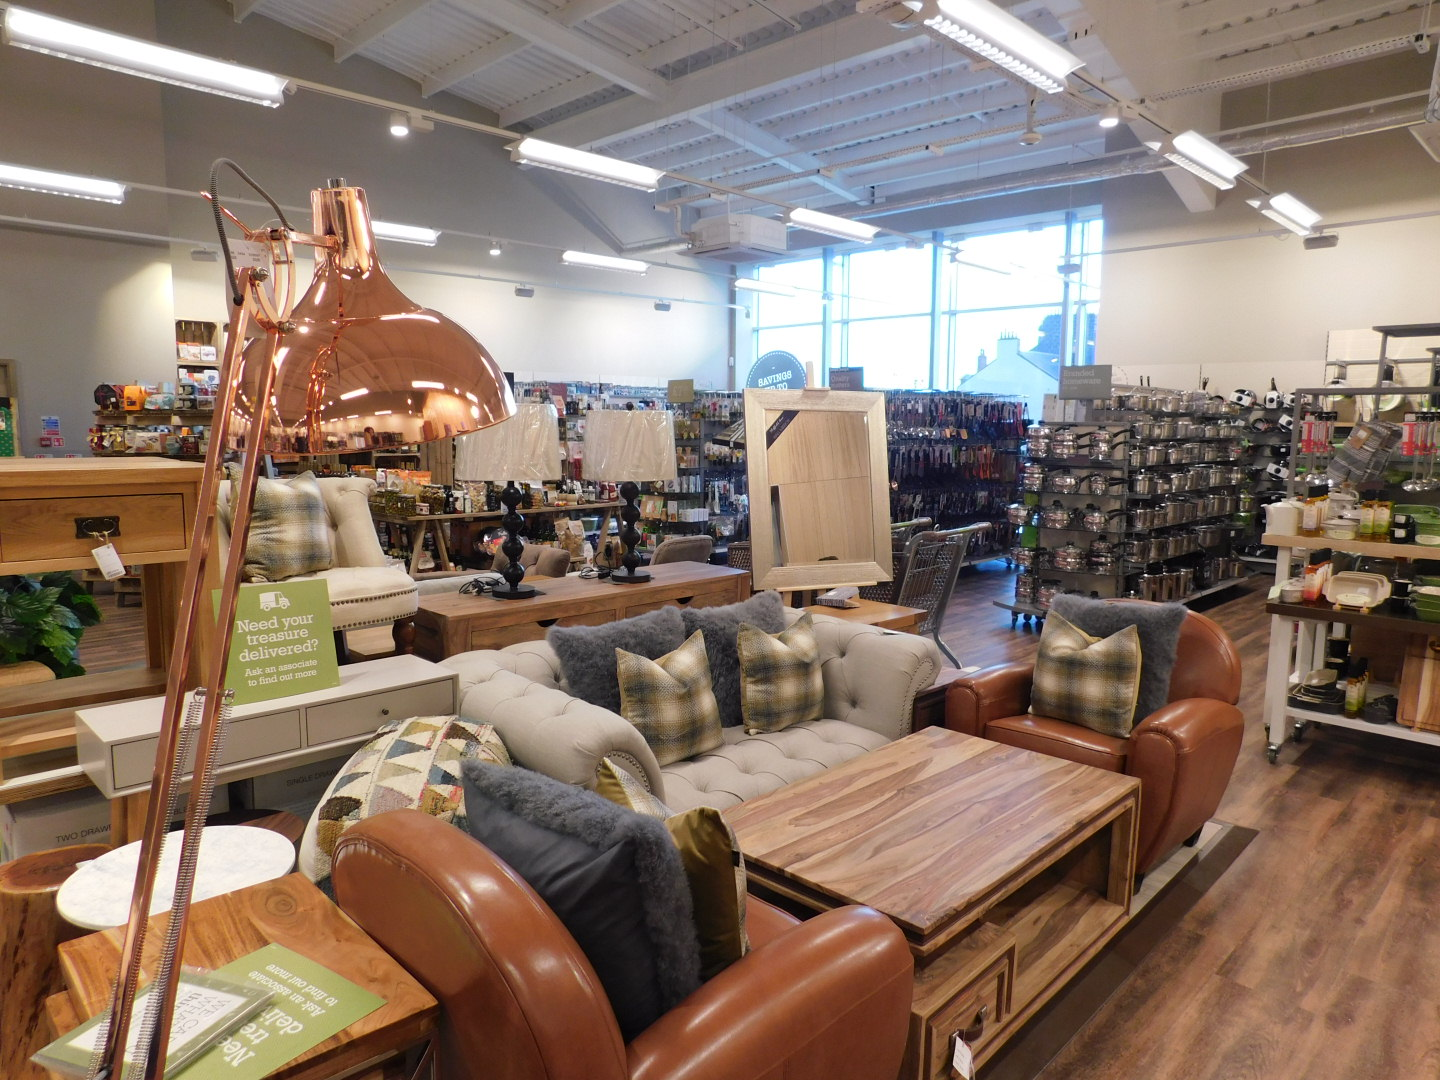 Furniture stores in aberdeen sd - Amazing The Aberdeen Store Which Is Located In The Union Square Outdoor Shopping Park Between Dreams And Hobbycraft Is The First Standalone Homebase Store